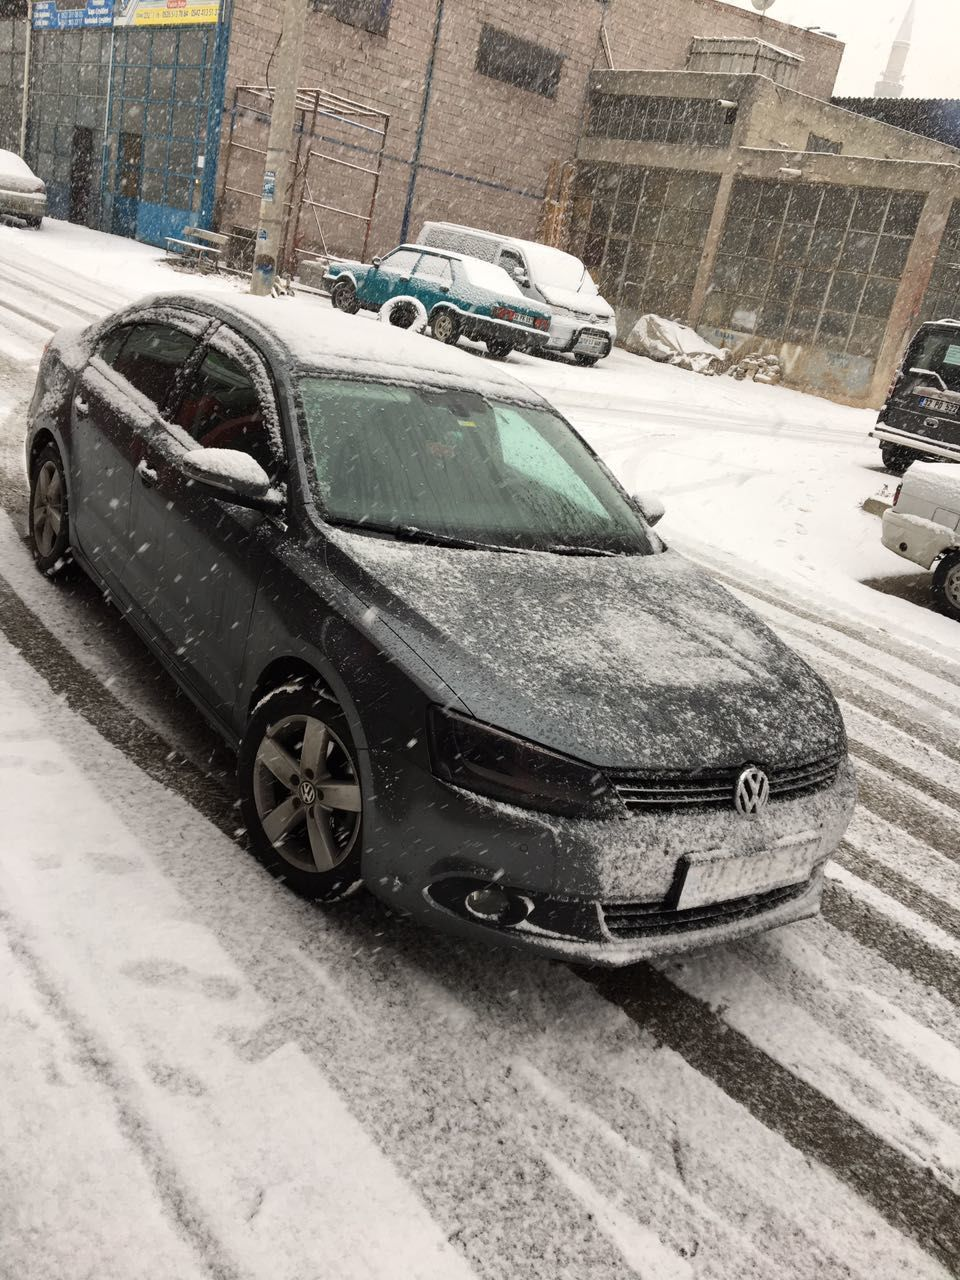 CLOSE-UP OF CAR ON SNOW COVERED CARS